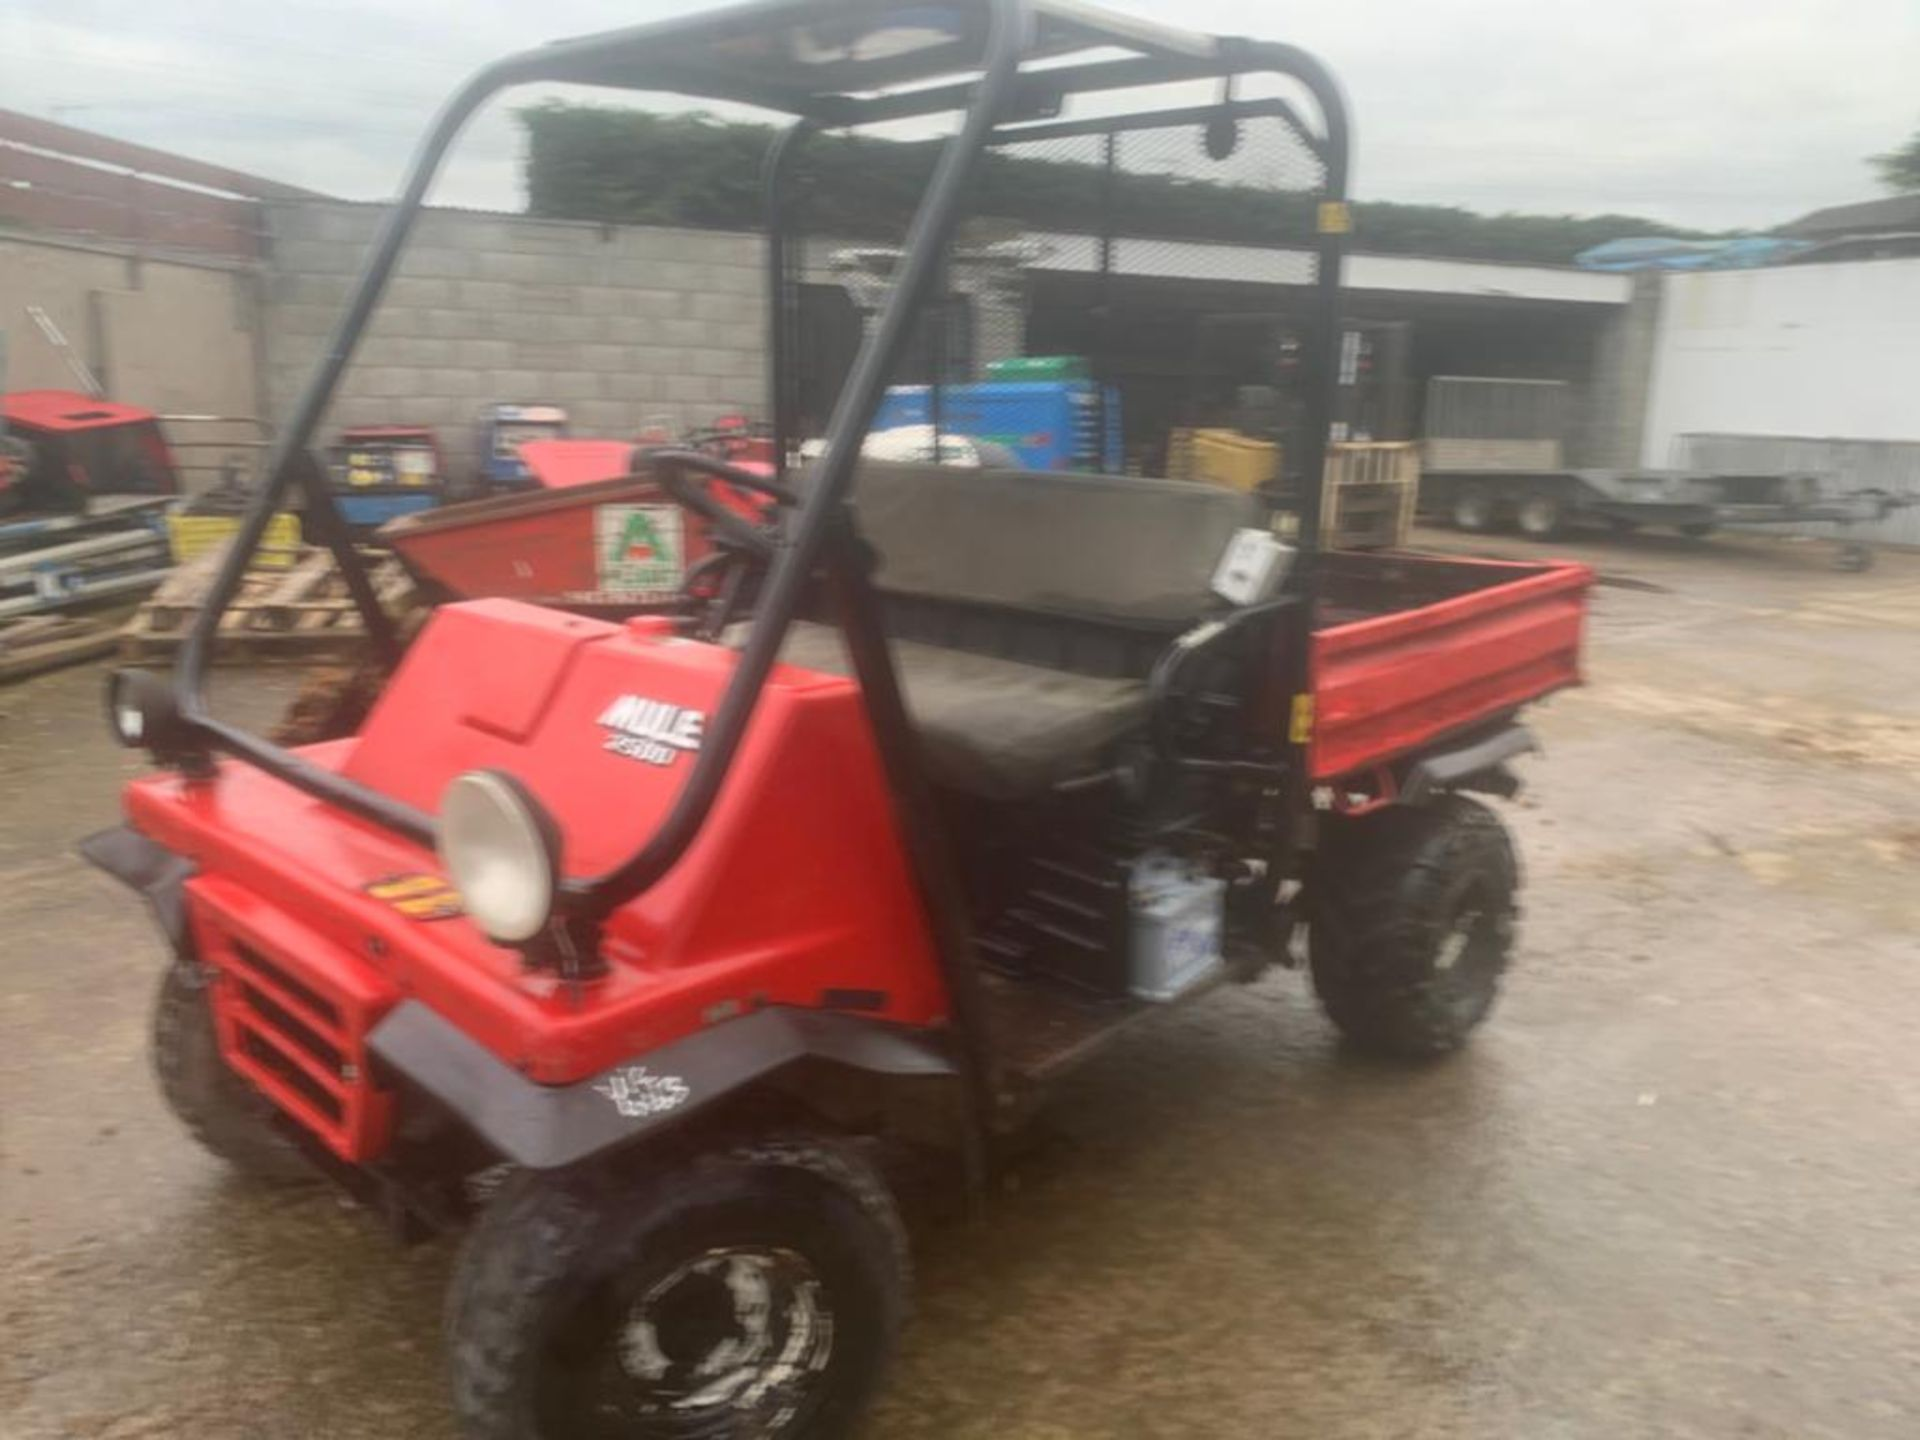 KAWASAKI PETROL MULE, DELIVERY ANYWHERE IN THE UK £300, STARTS, RUNS AND DRIVES *PLUS VAT* - Image 3 of 7